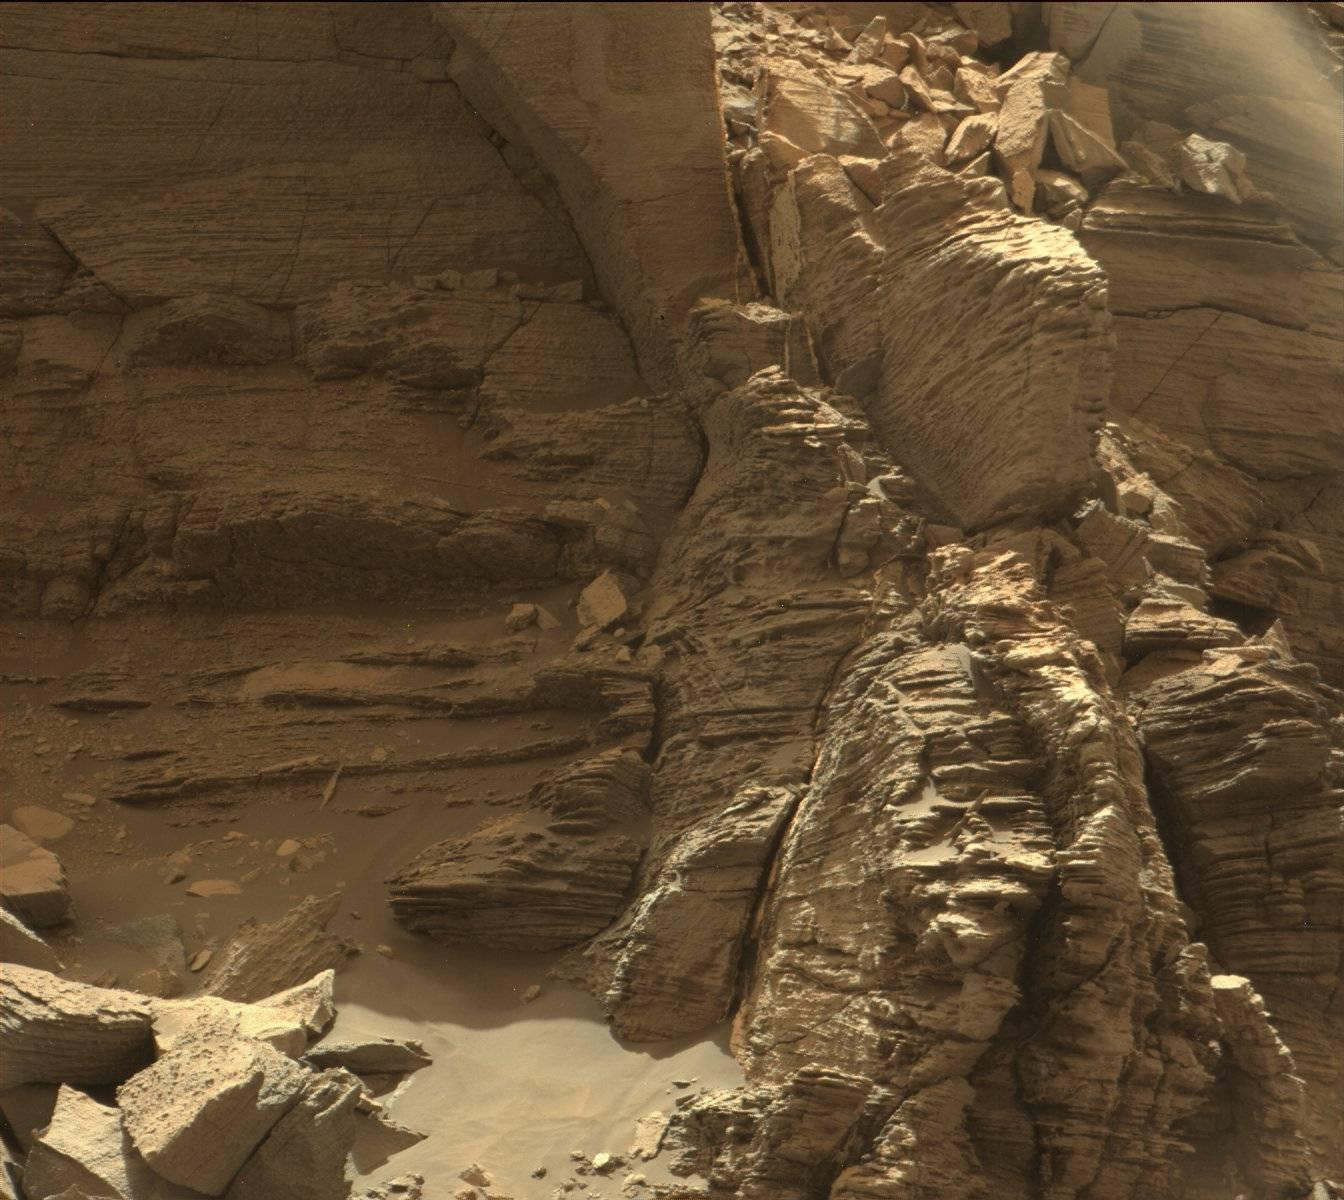 Stunning New Images Of Mars From The Curiosity Rover - Universe Today